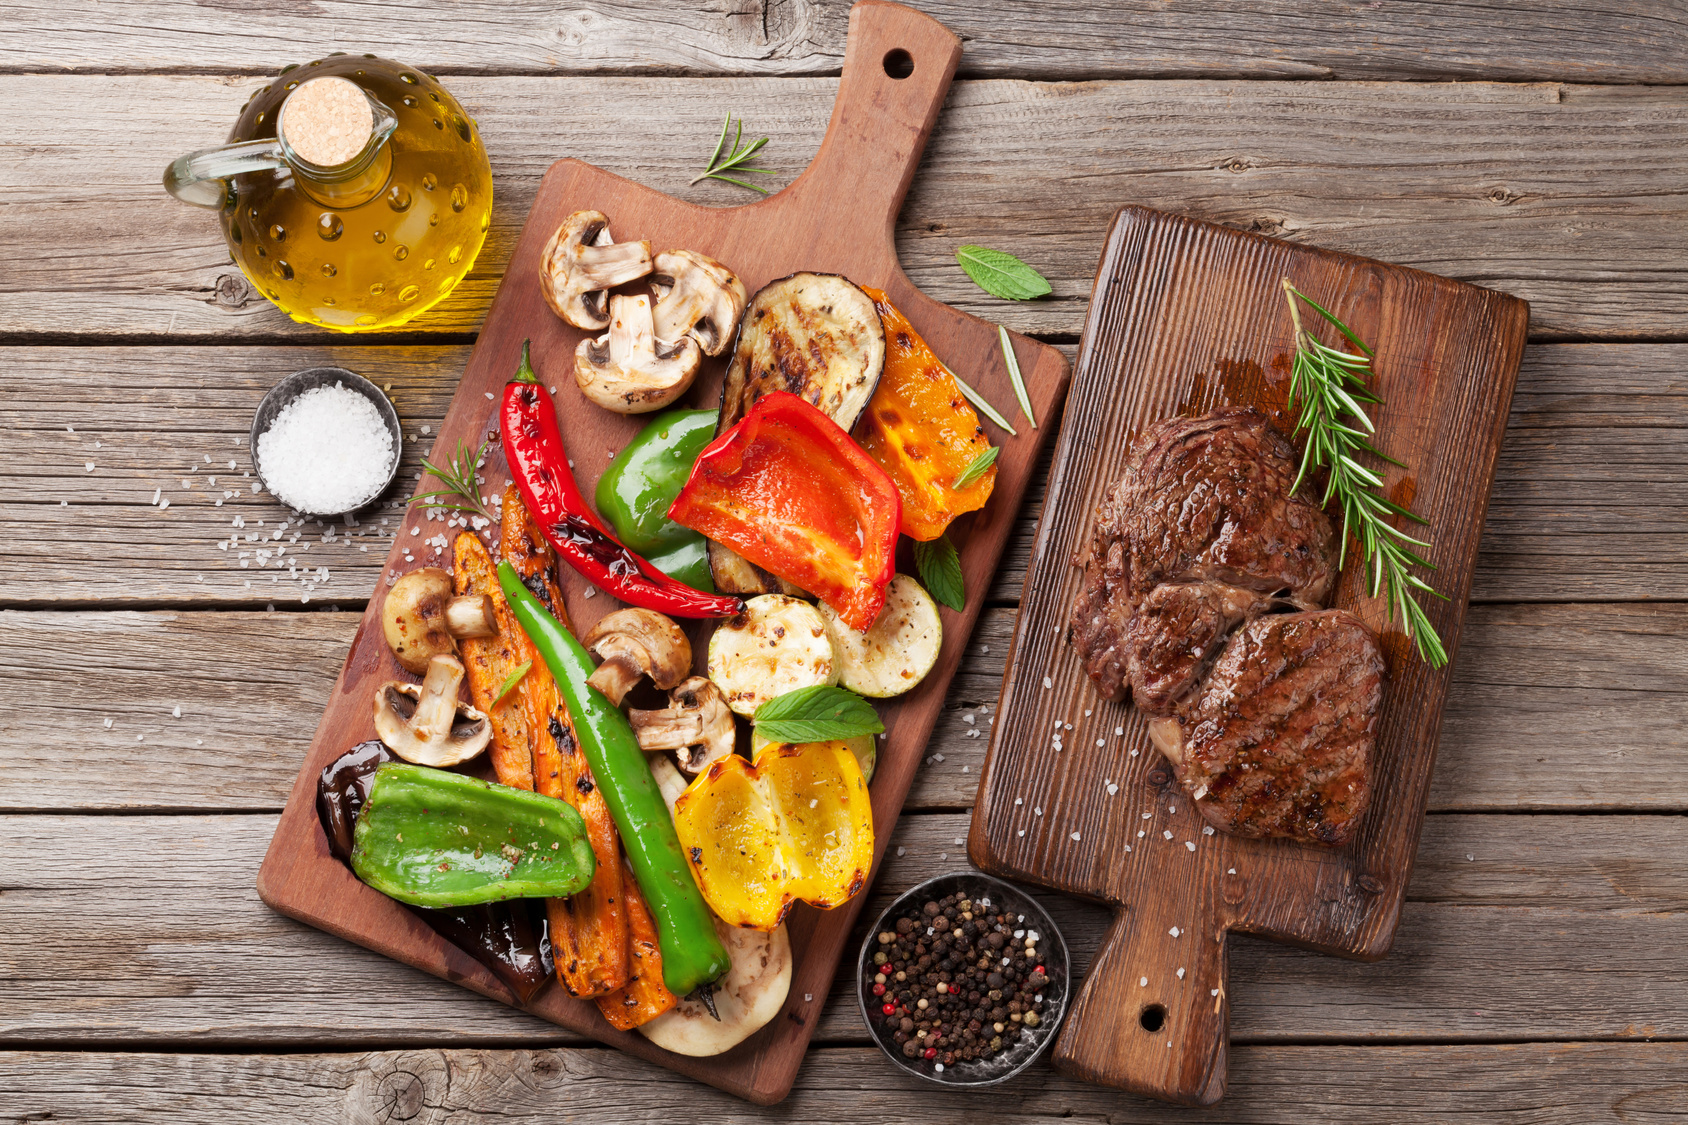 Grilled vegetables and beef steak on cutting board on wooden table. Top view